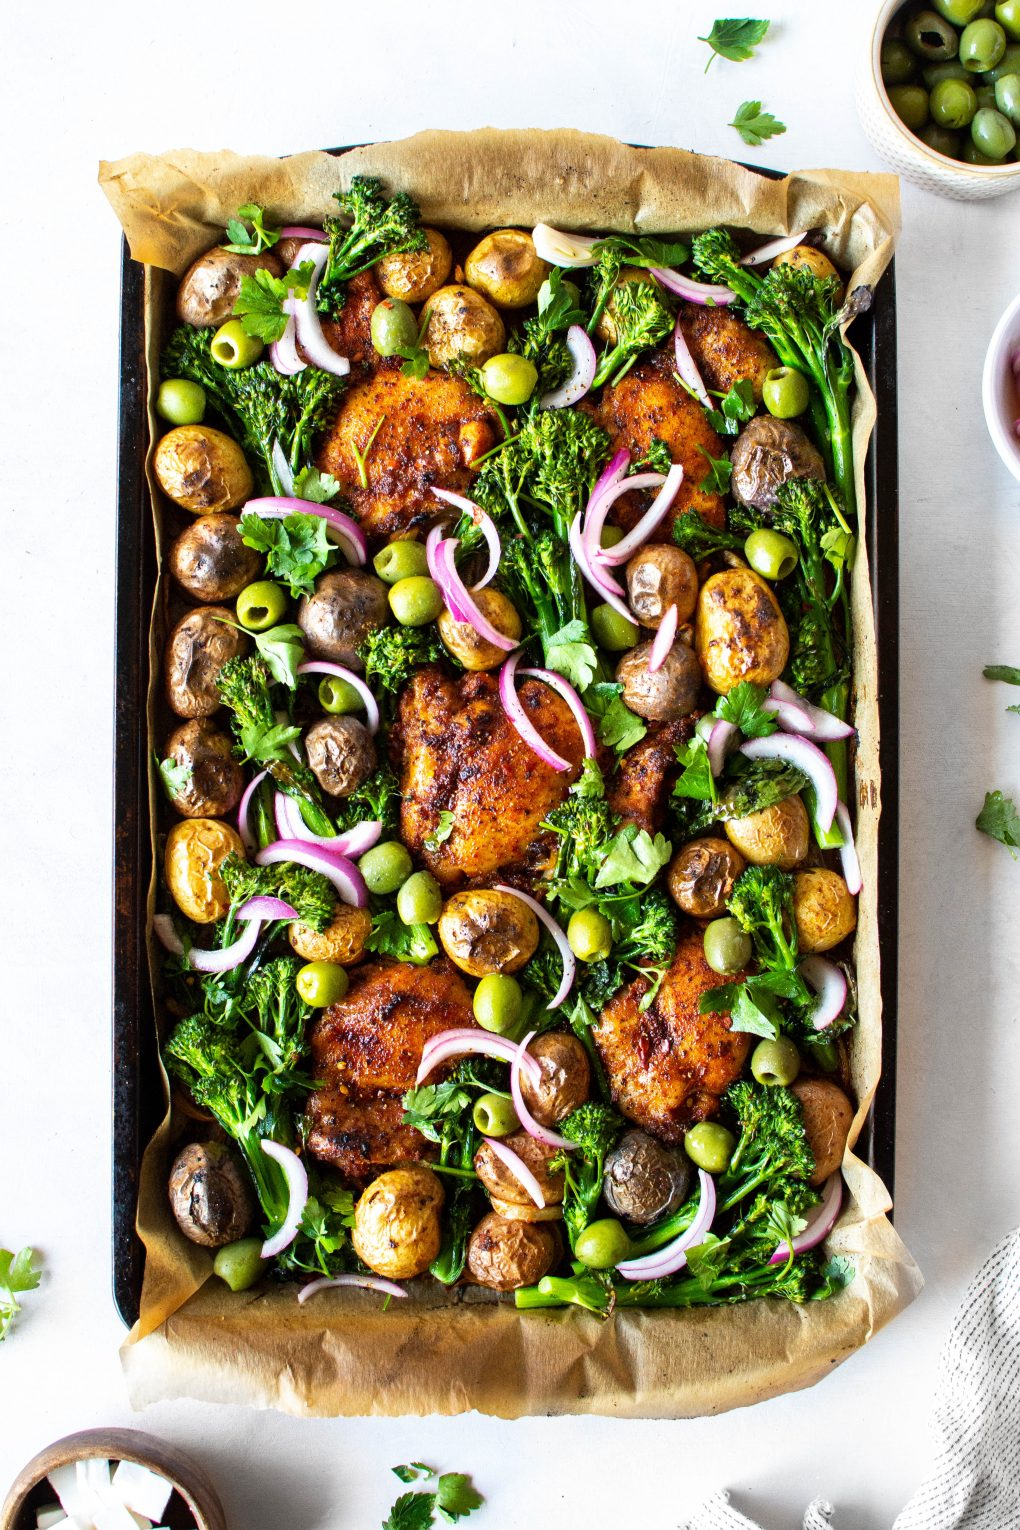 An overhead view of a roasting tray with spiced chicken thighs, potatos, broccolini, olives, and pickled red onions on a white background